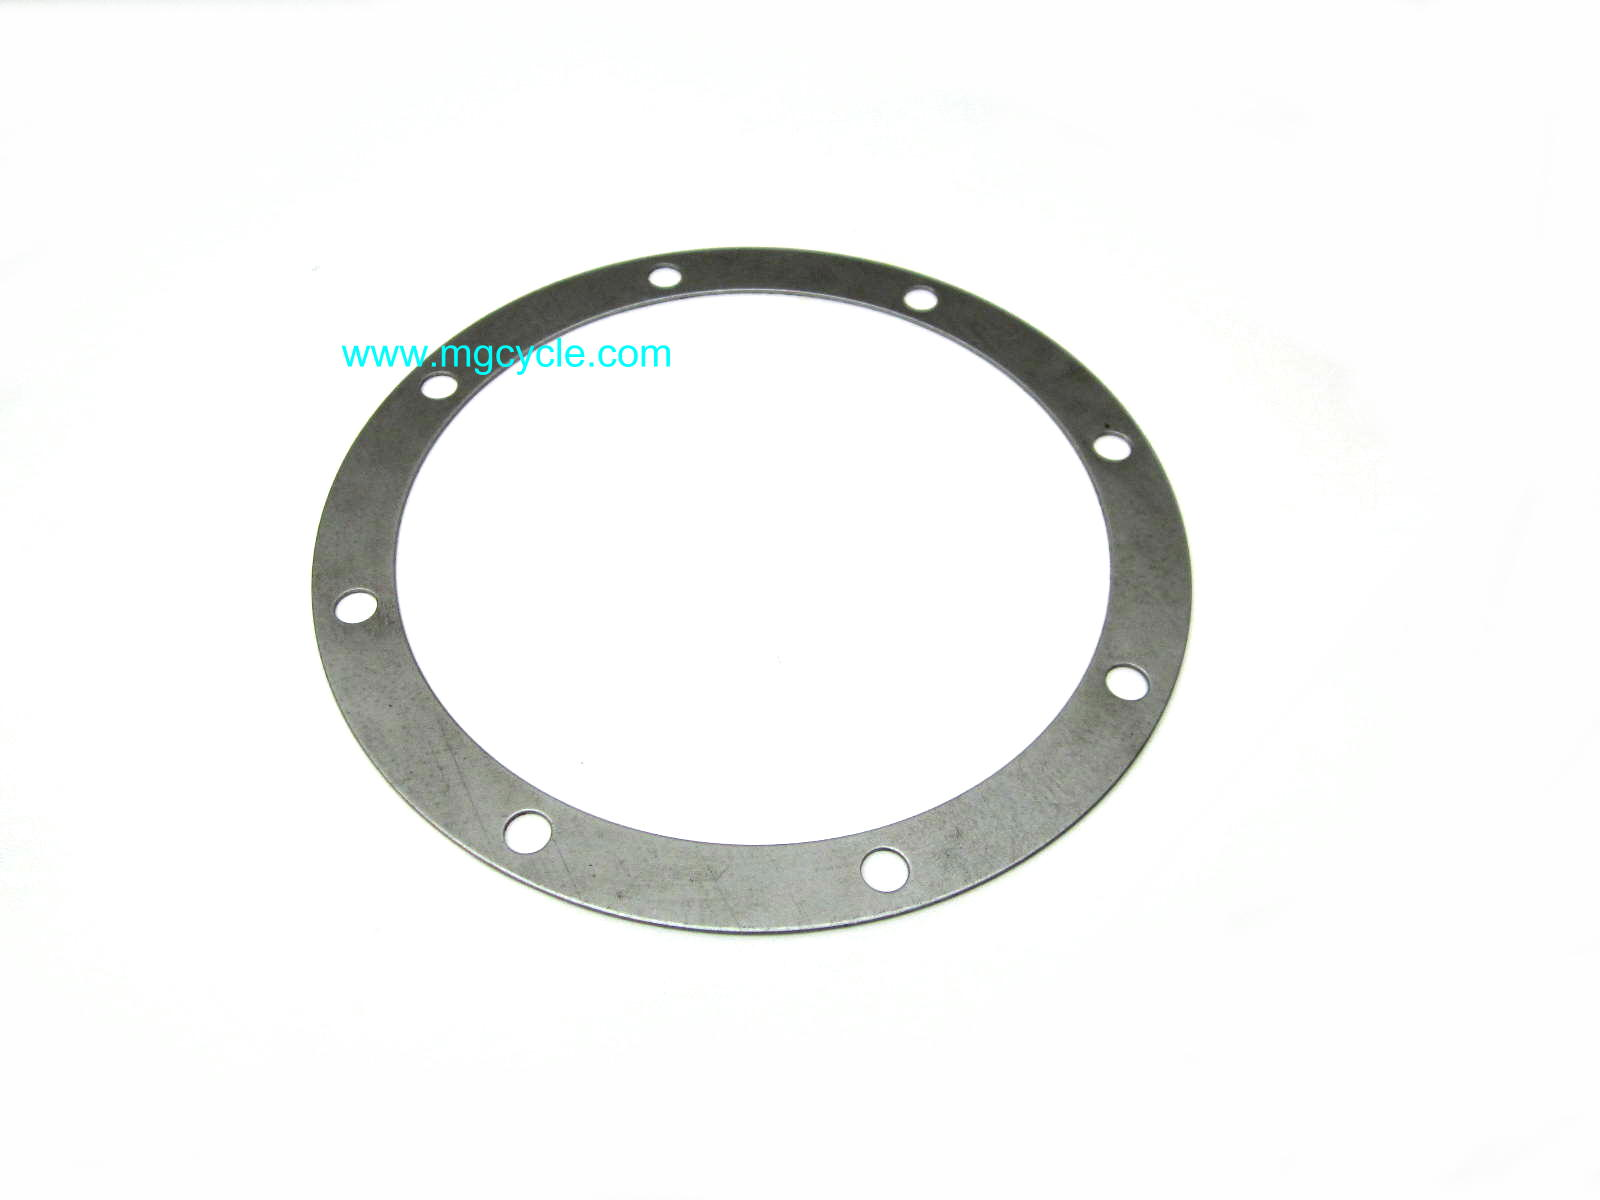 Rear drive box shim, large, Disc brake 1.1 mm GU17355406